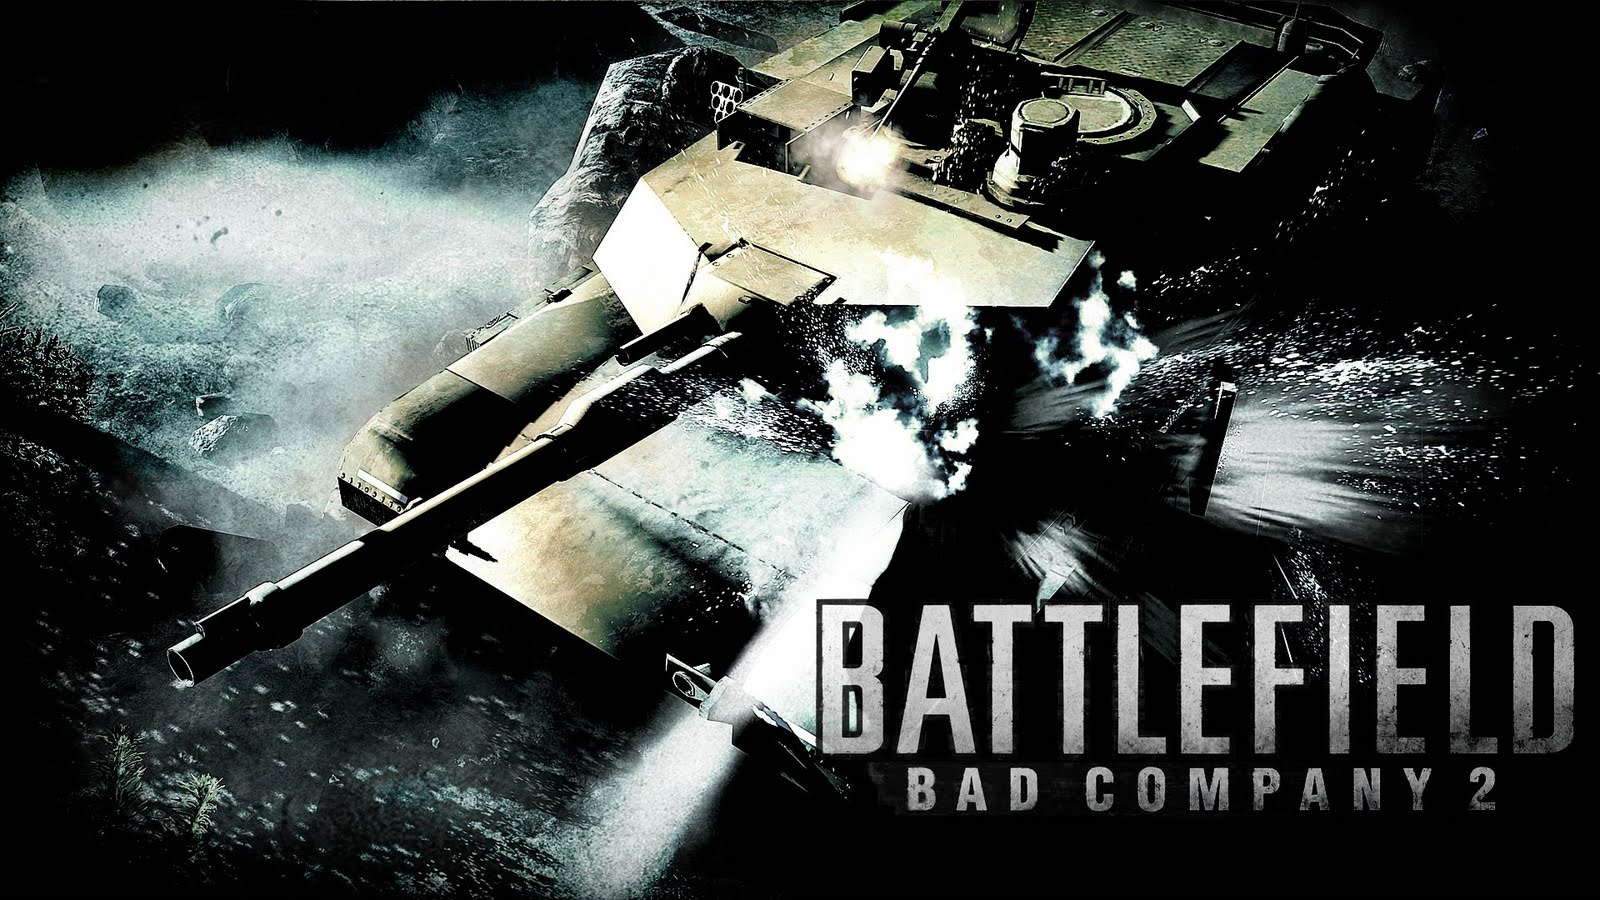 Battlefield Bad Company 2 Hd Wallpapers Download Hd Video Game Wallpapers